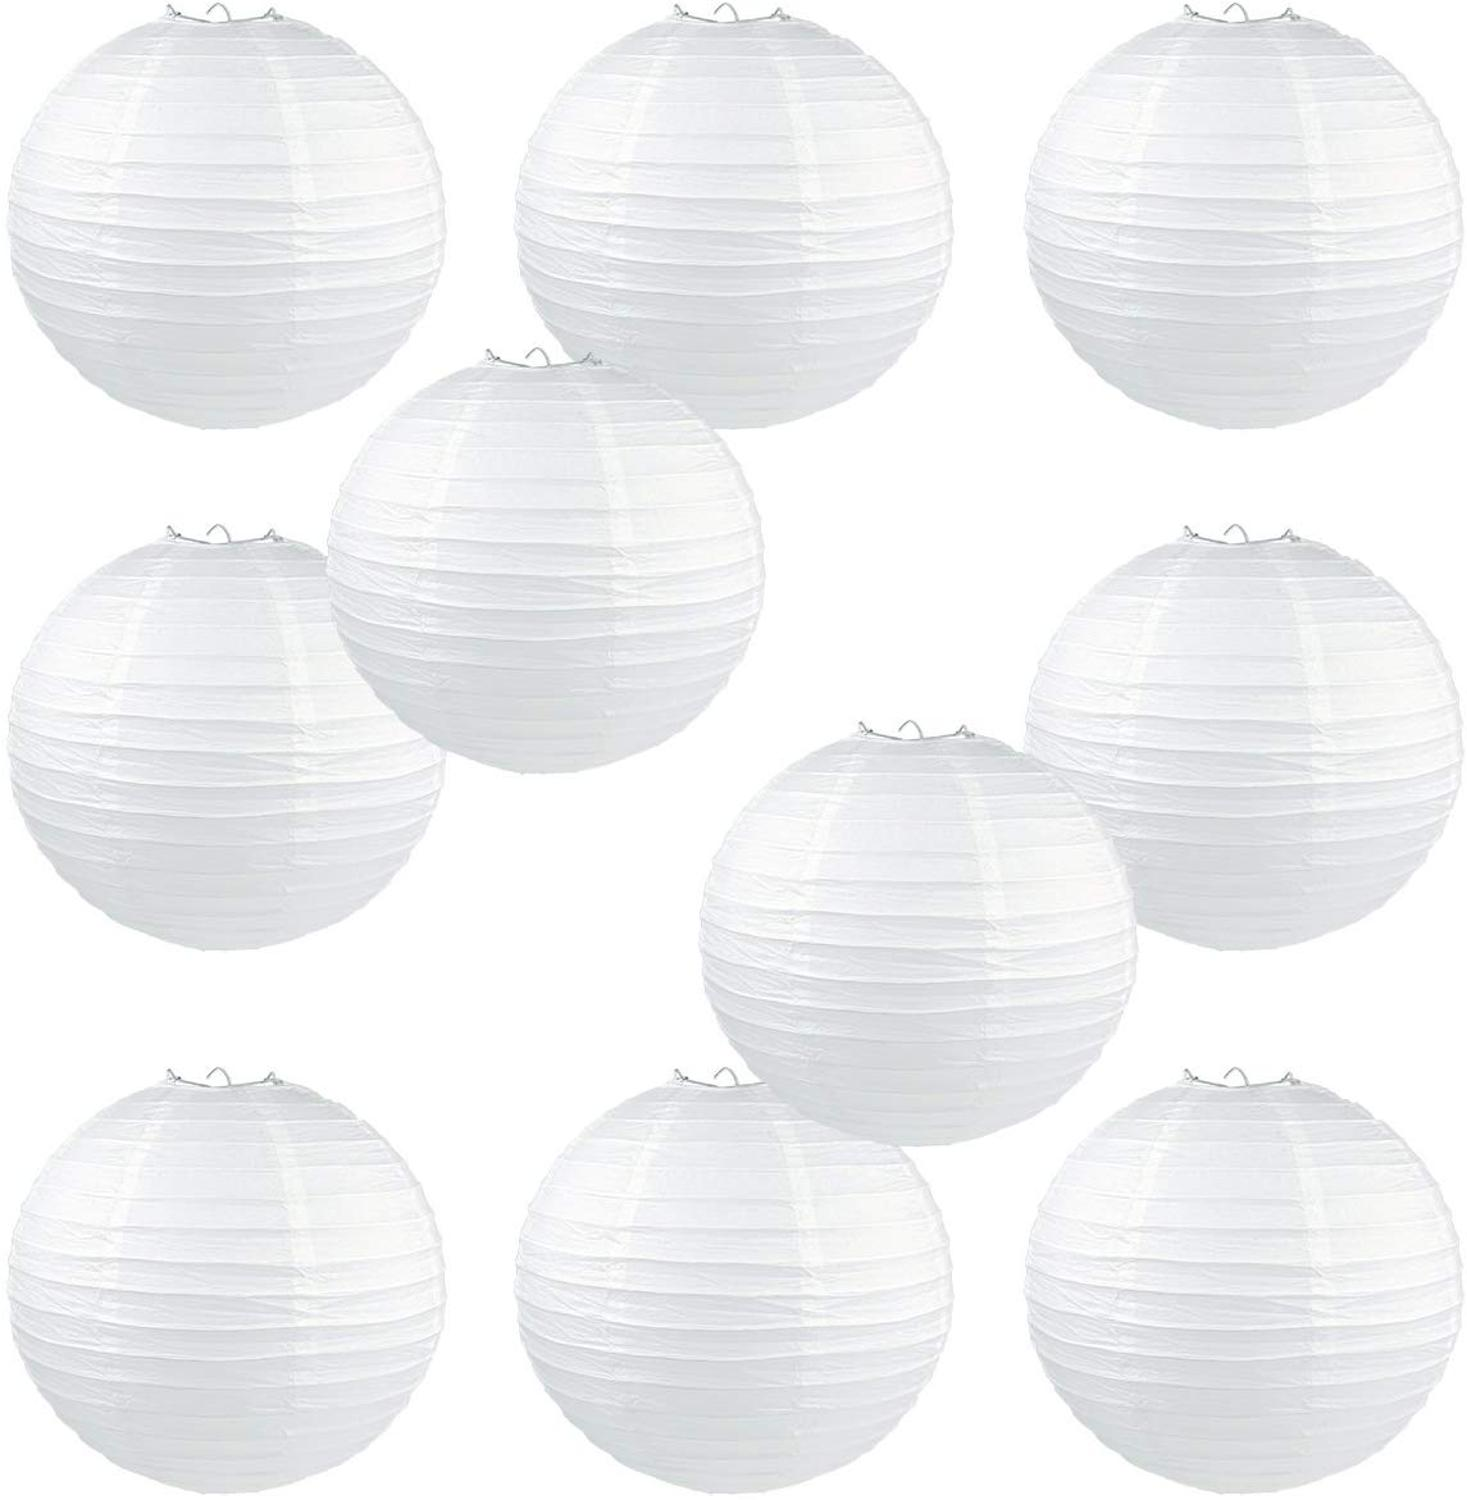 10Pcs Chinese White Elegant Paper Lantern Birthday Wedding Party Decor DIY Lampion Hanging Lantern Ball Festival Decor Supplies